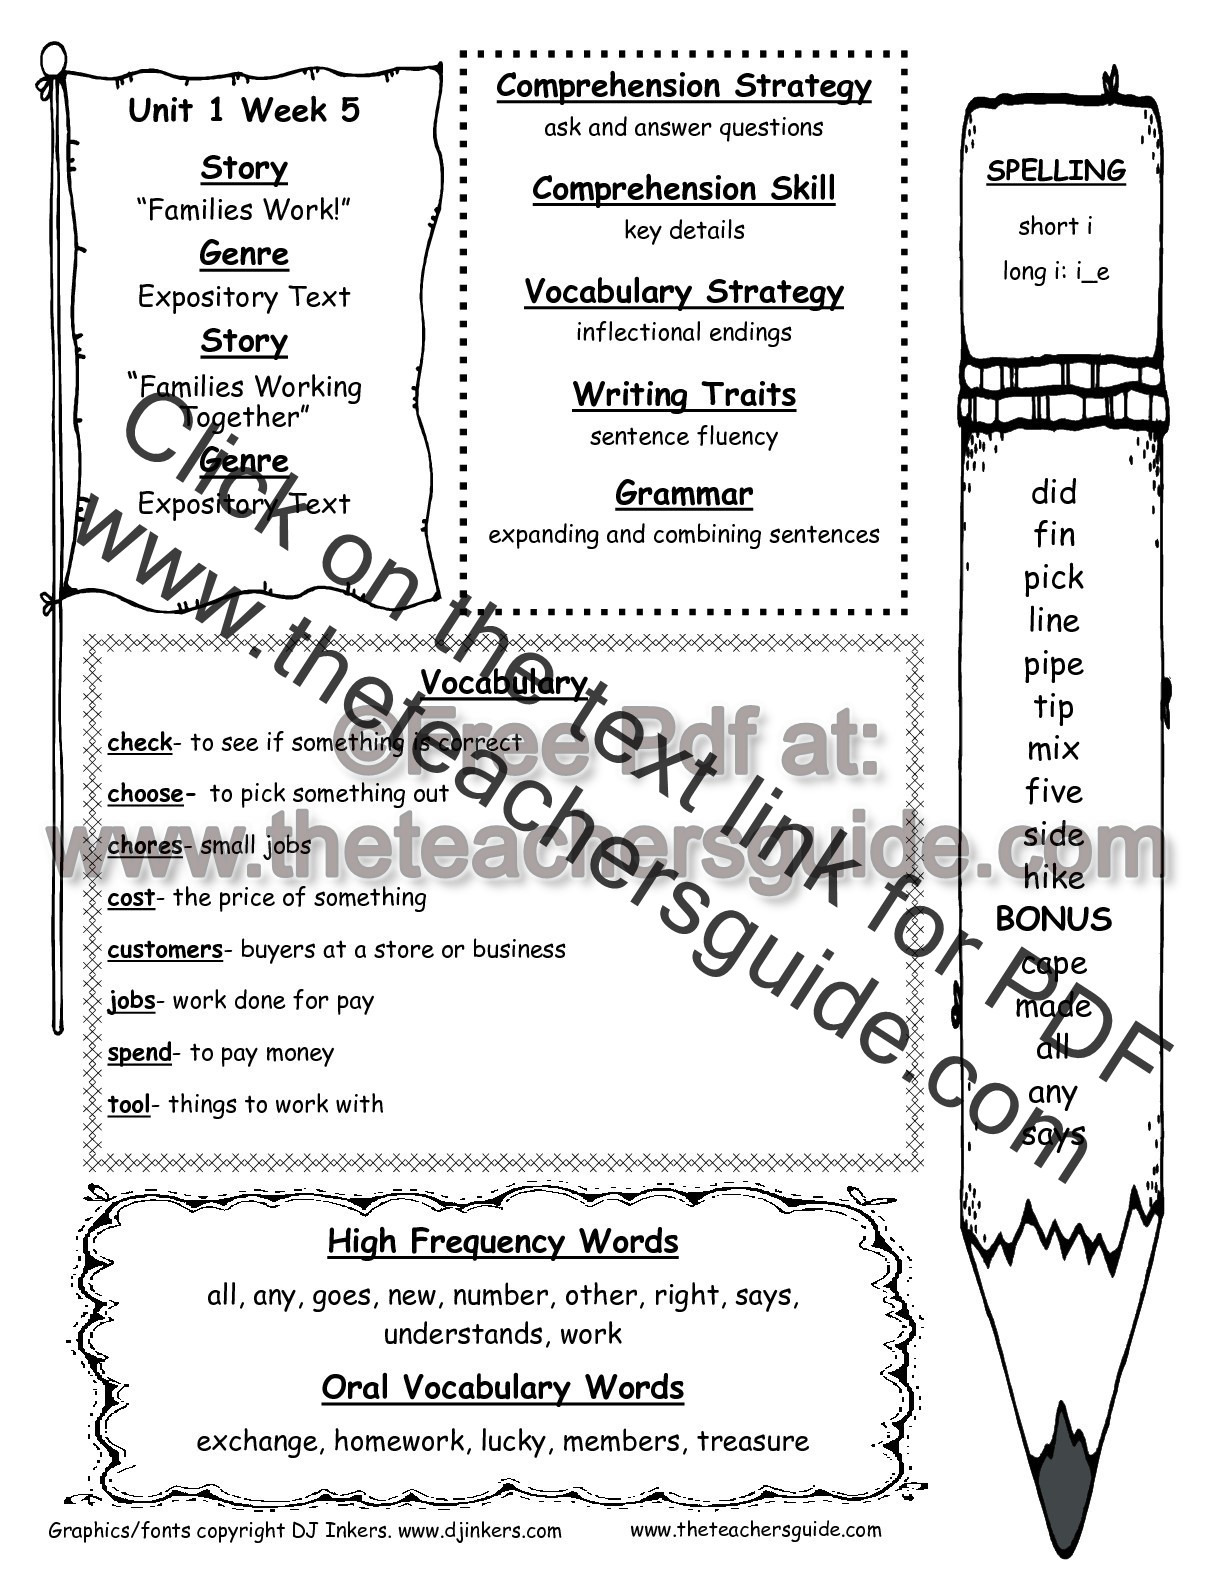 Inflectional Endings Worksheets 2nd Grade Wonders Second Grade Unit E Week Five Printouts